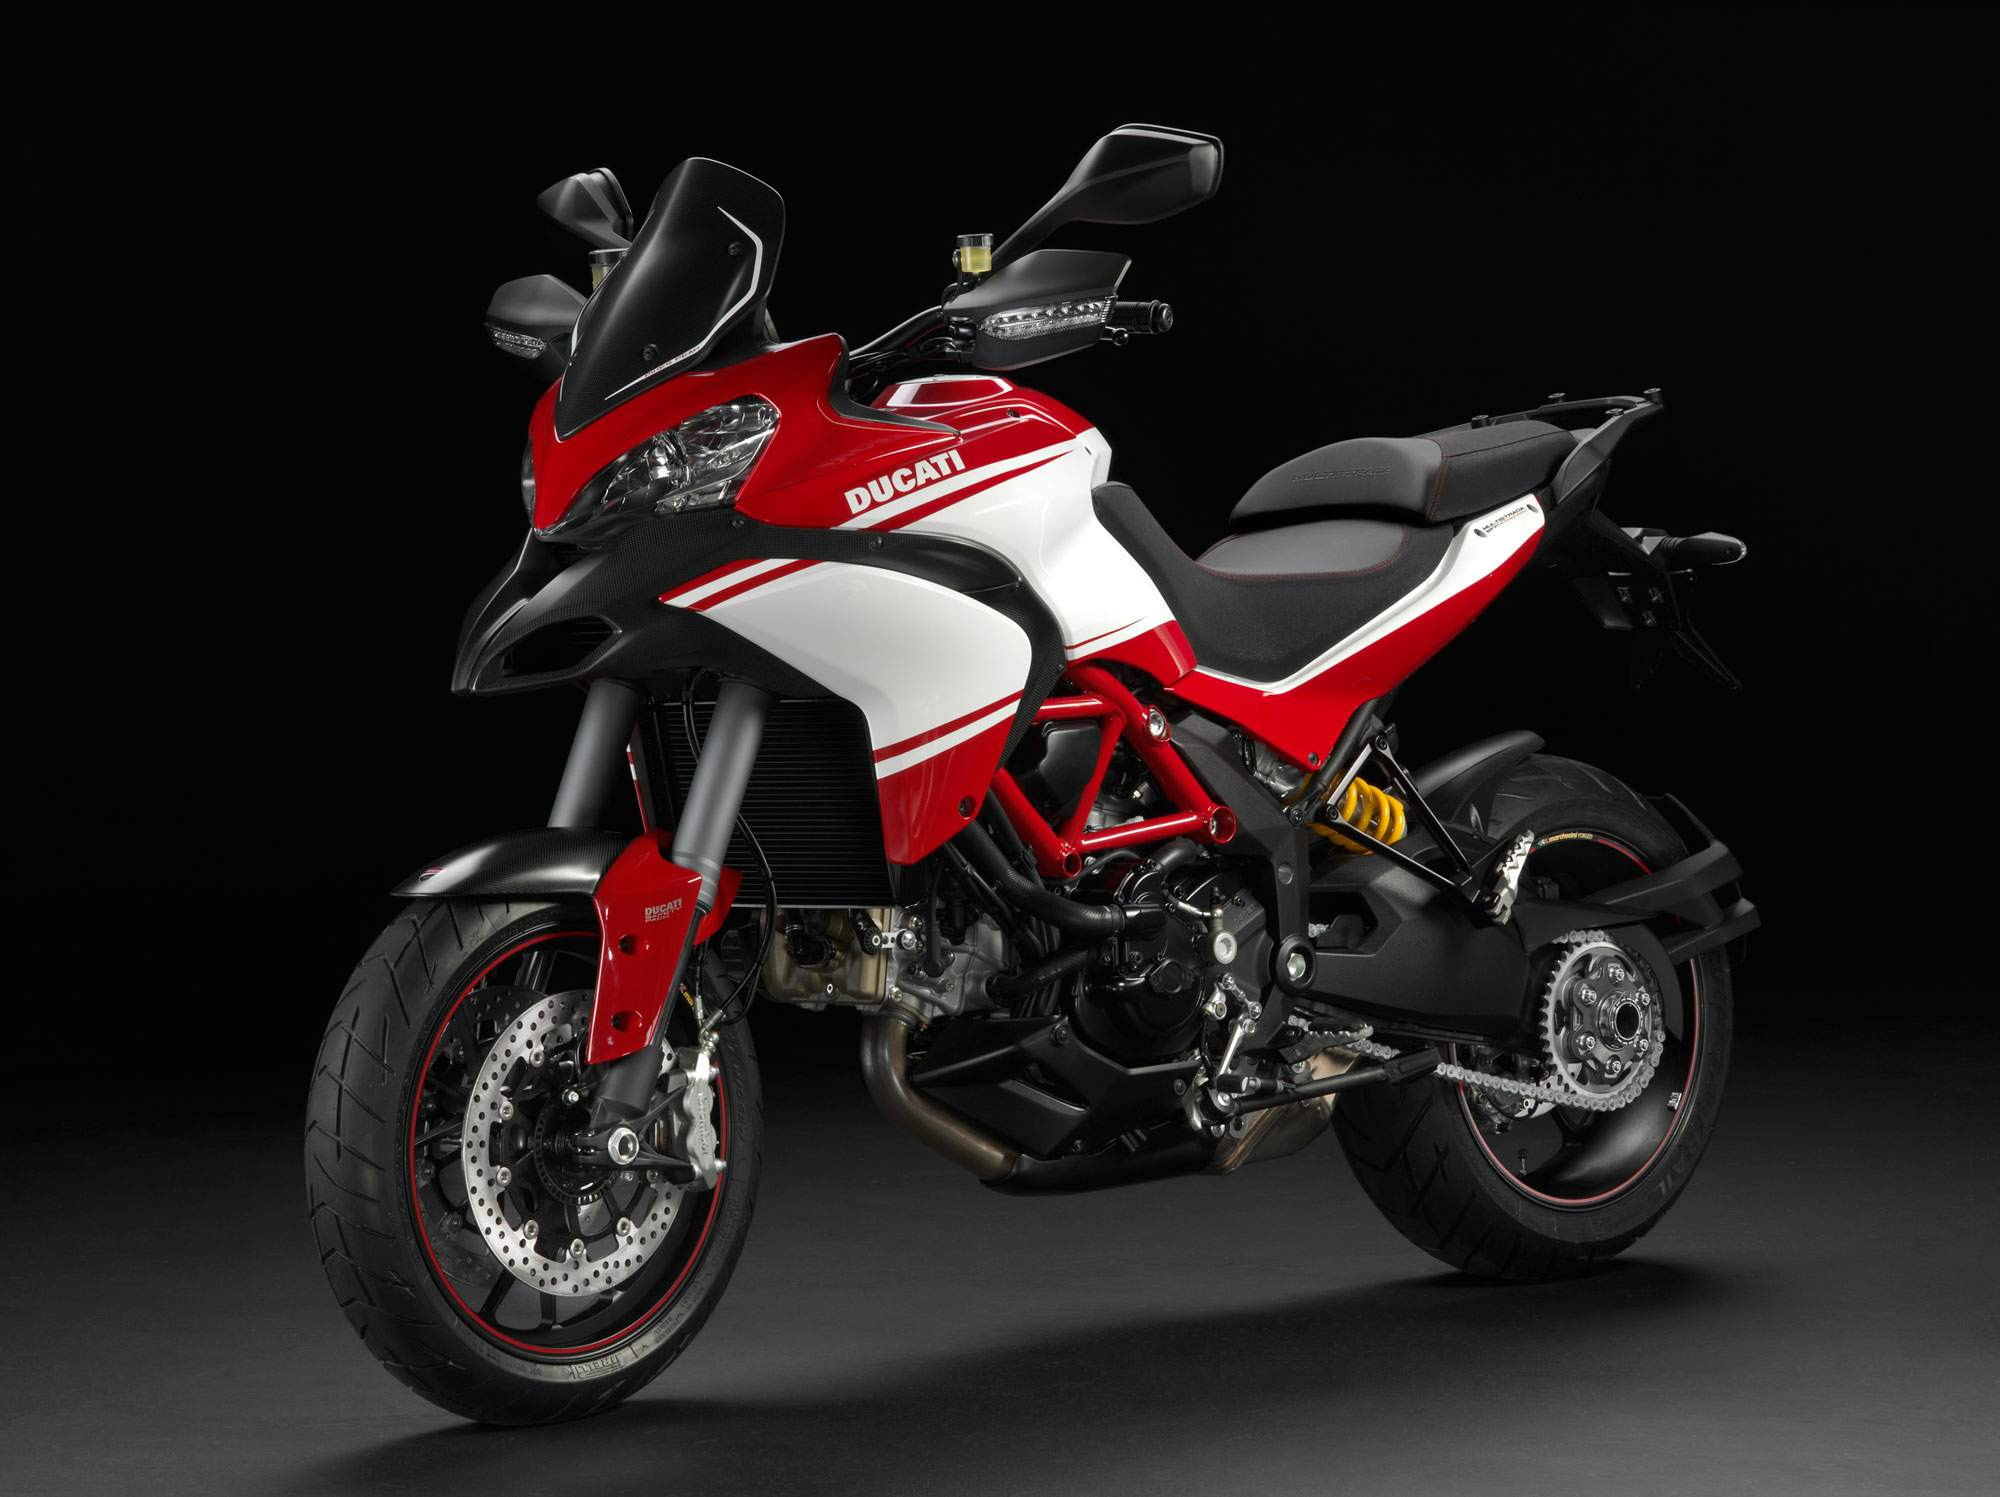 Ducati Multistrada 1200 S Pikes Peak For Sale Specifications, Price and Images